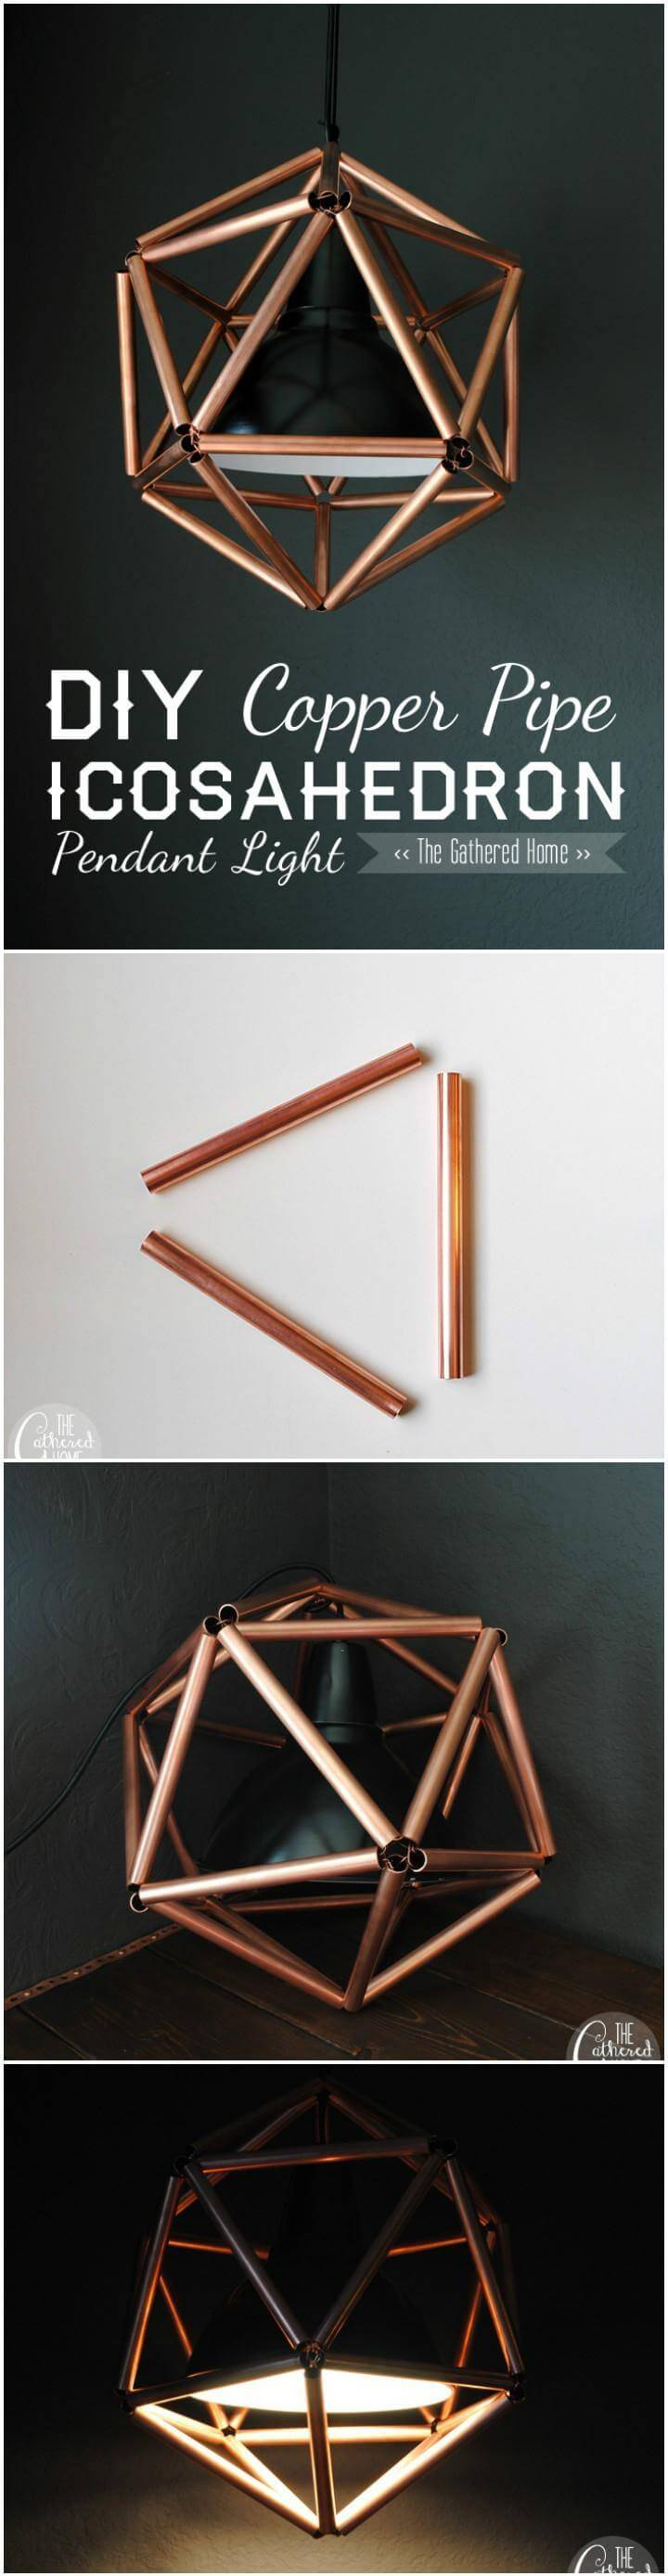 self-made DIY copper pipe icosahedron pendant light